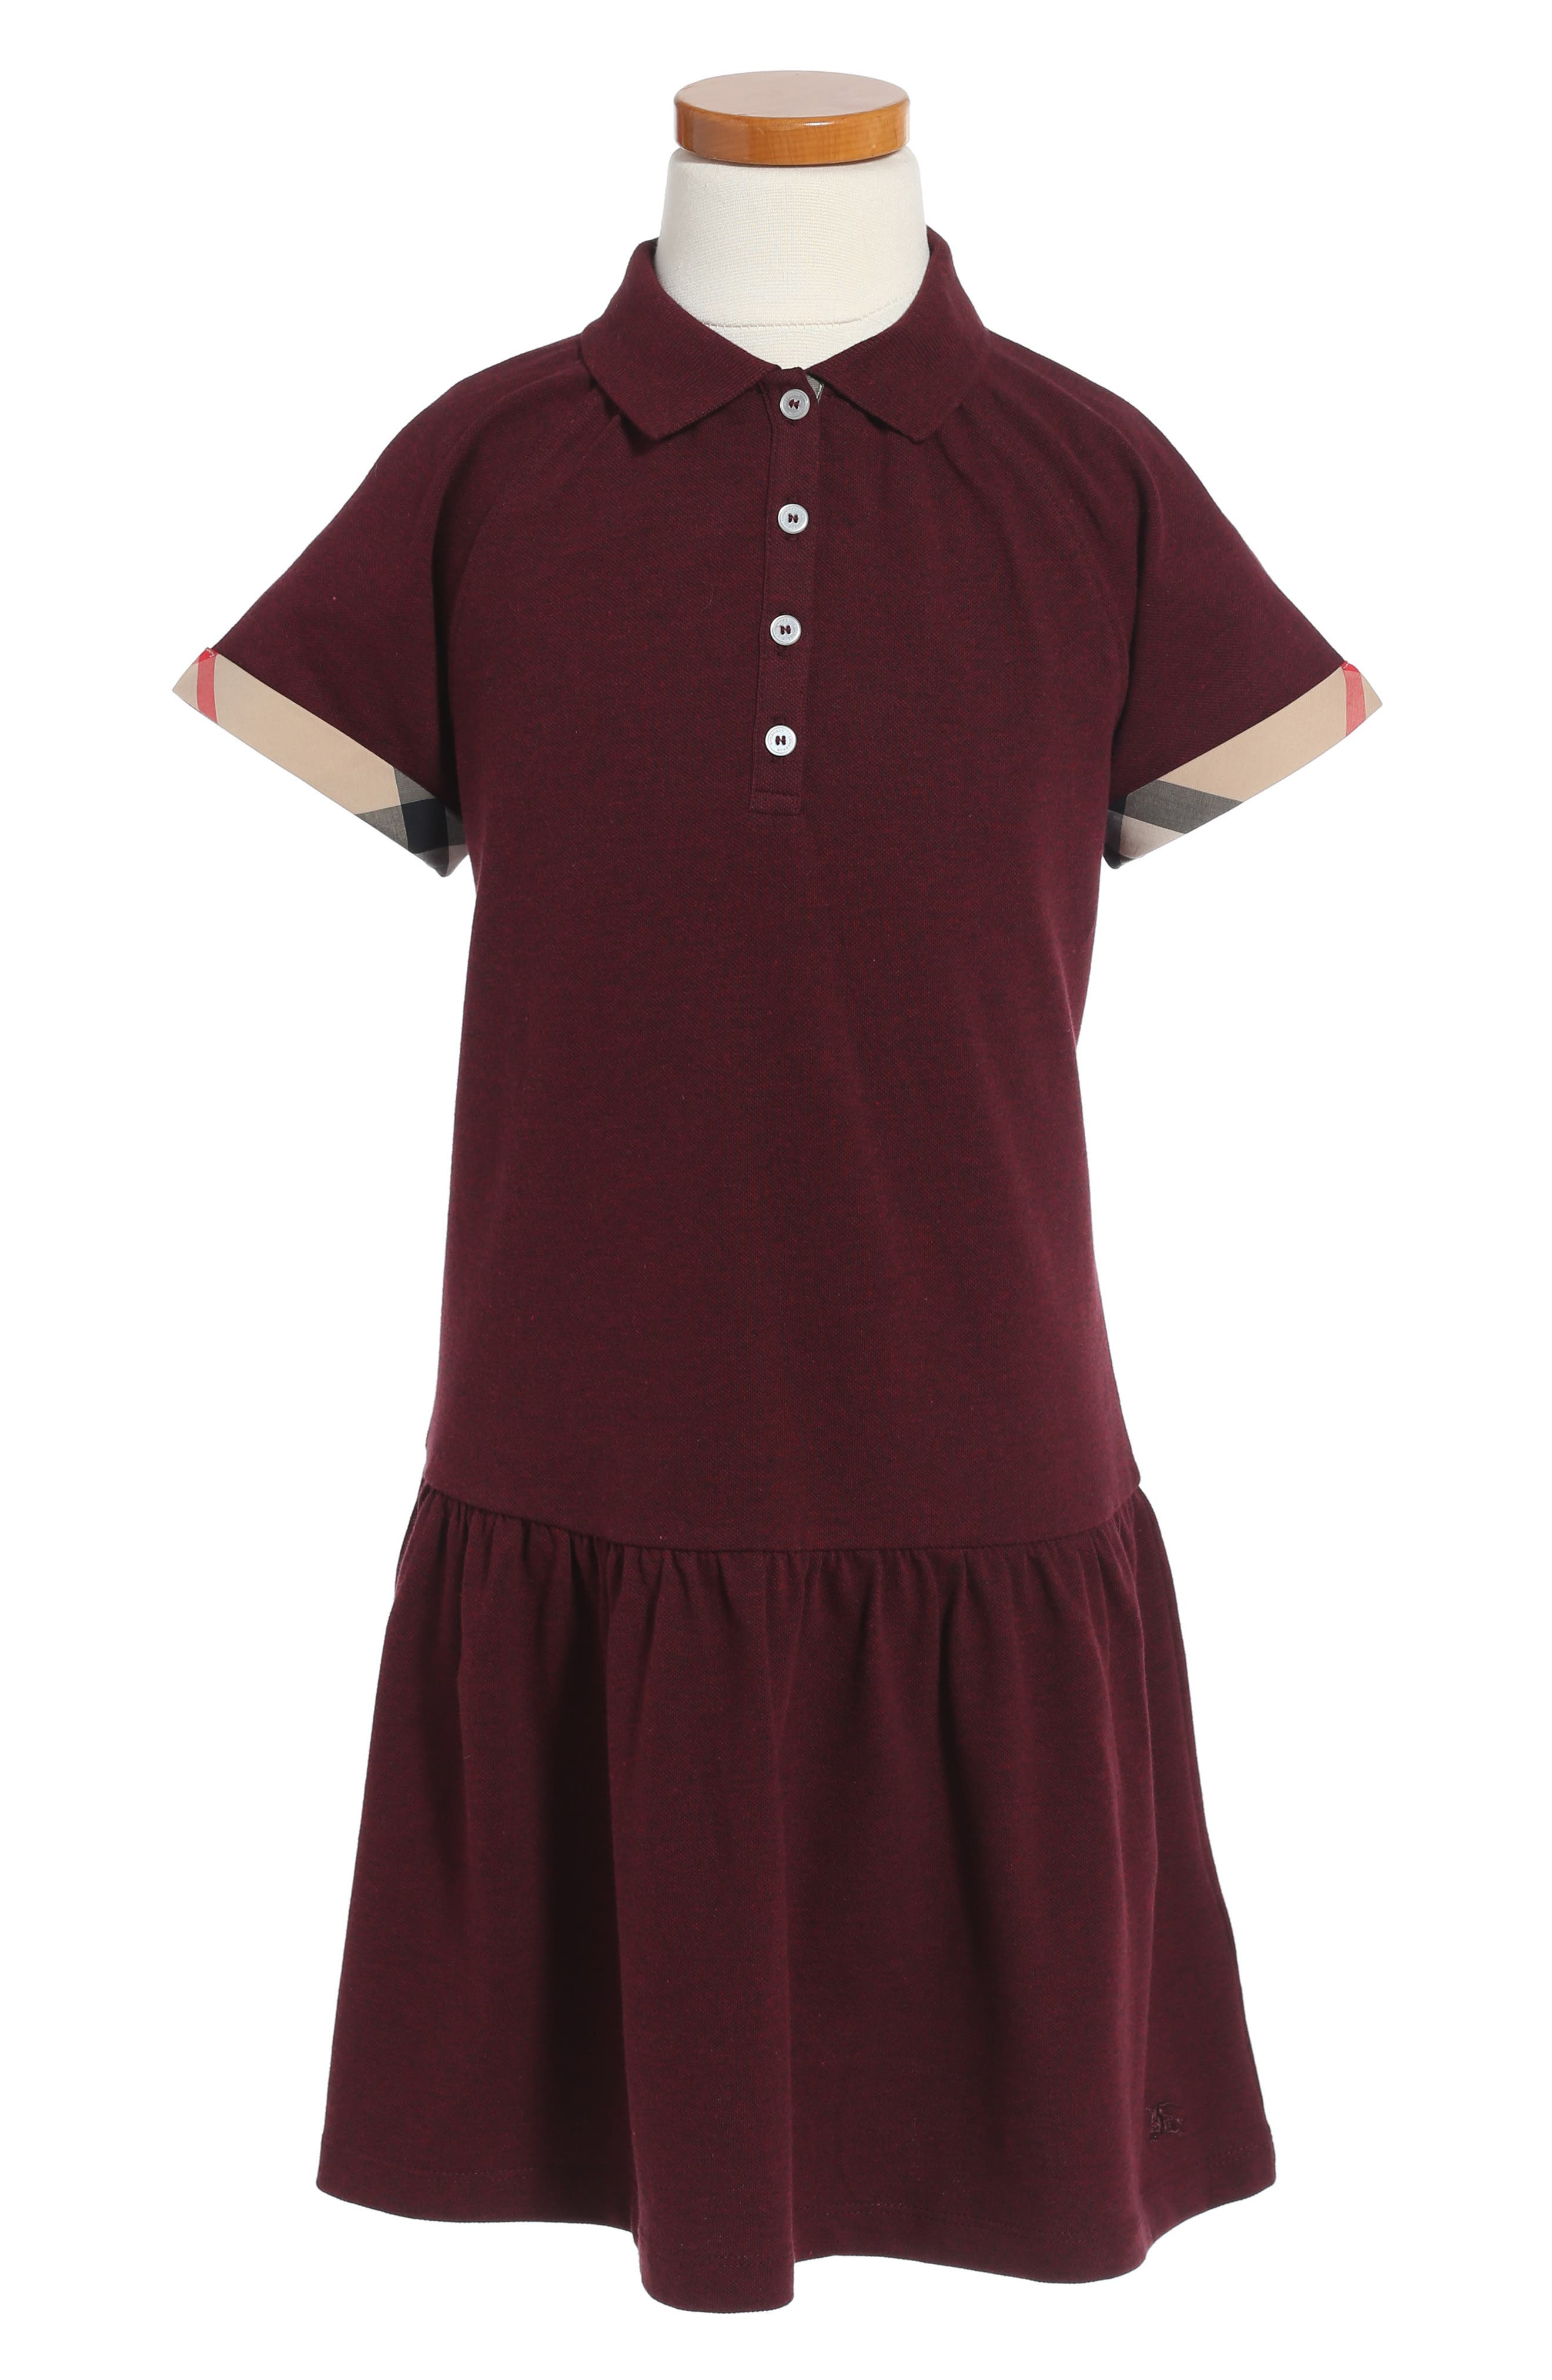 Alternate Image 1 Selected - Burberry Mini Cali Polo Dress (Toddler Girls, Little Girls & Big Girls)